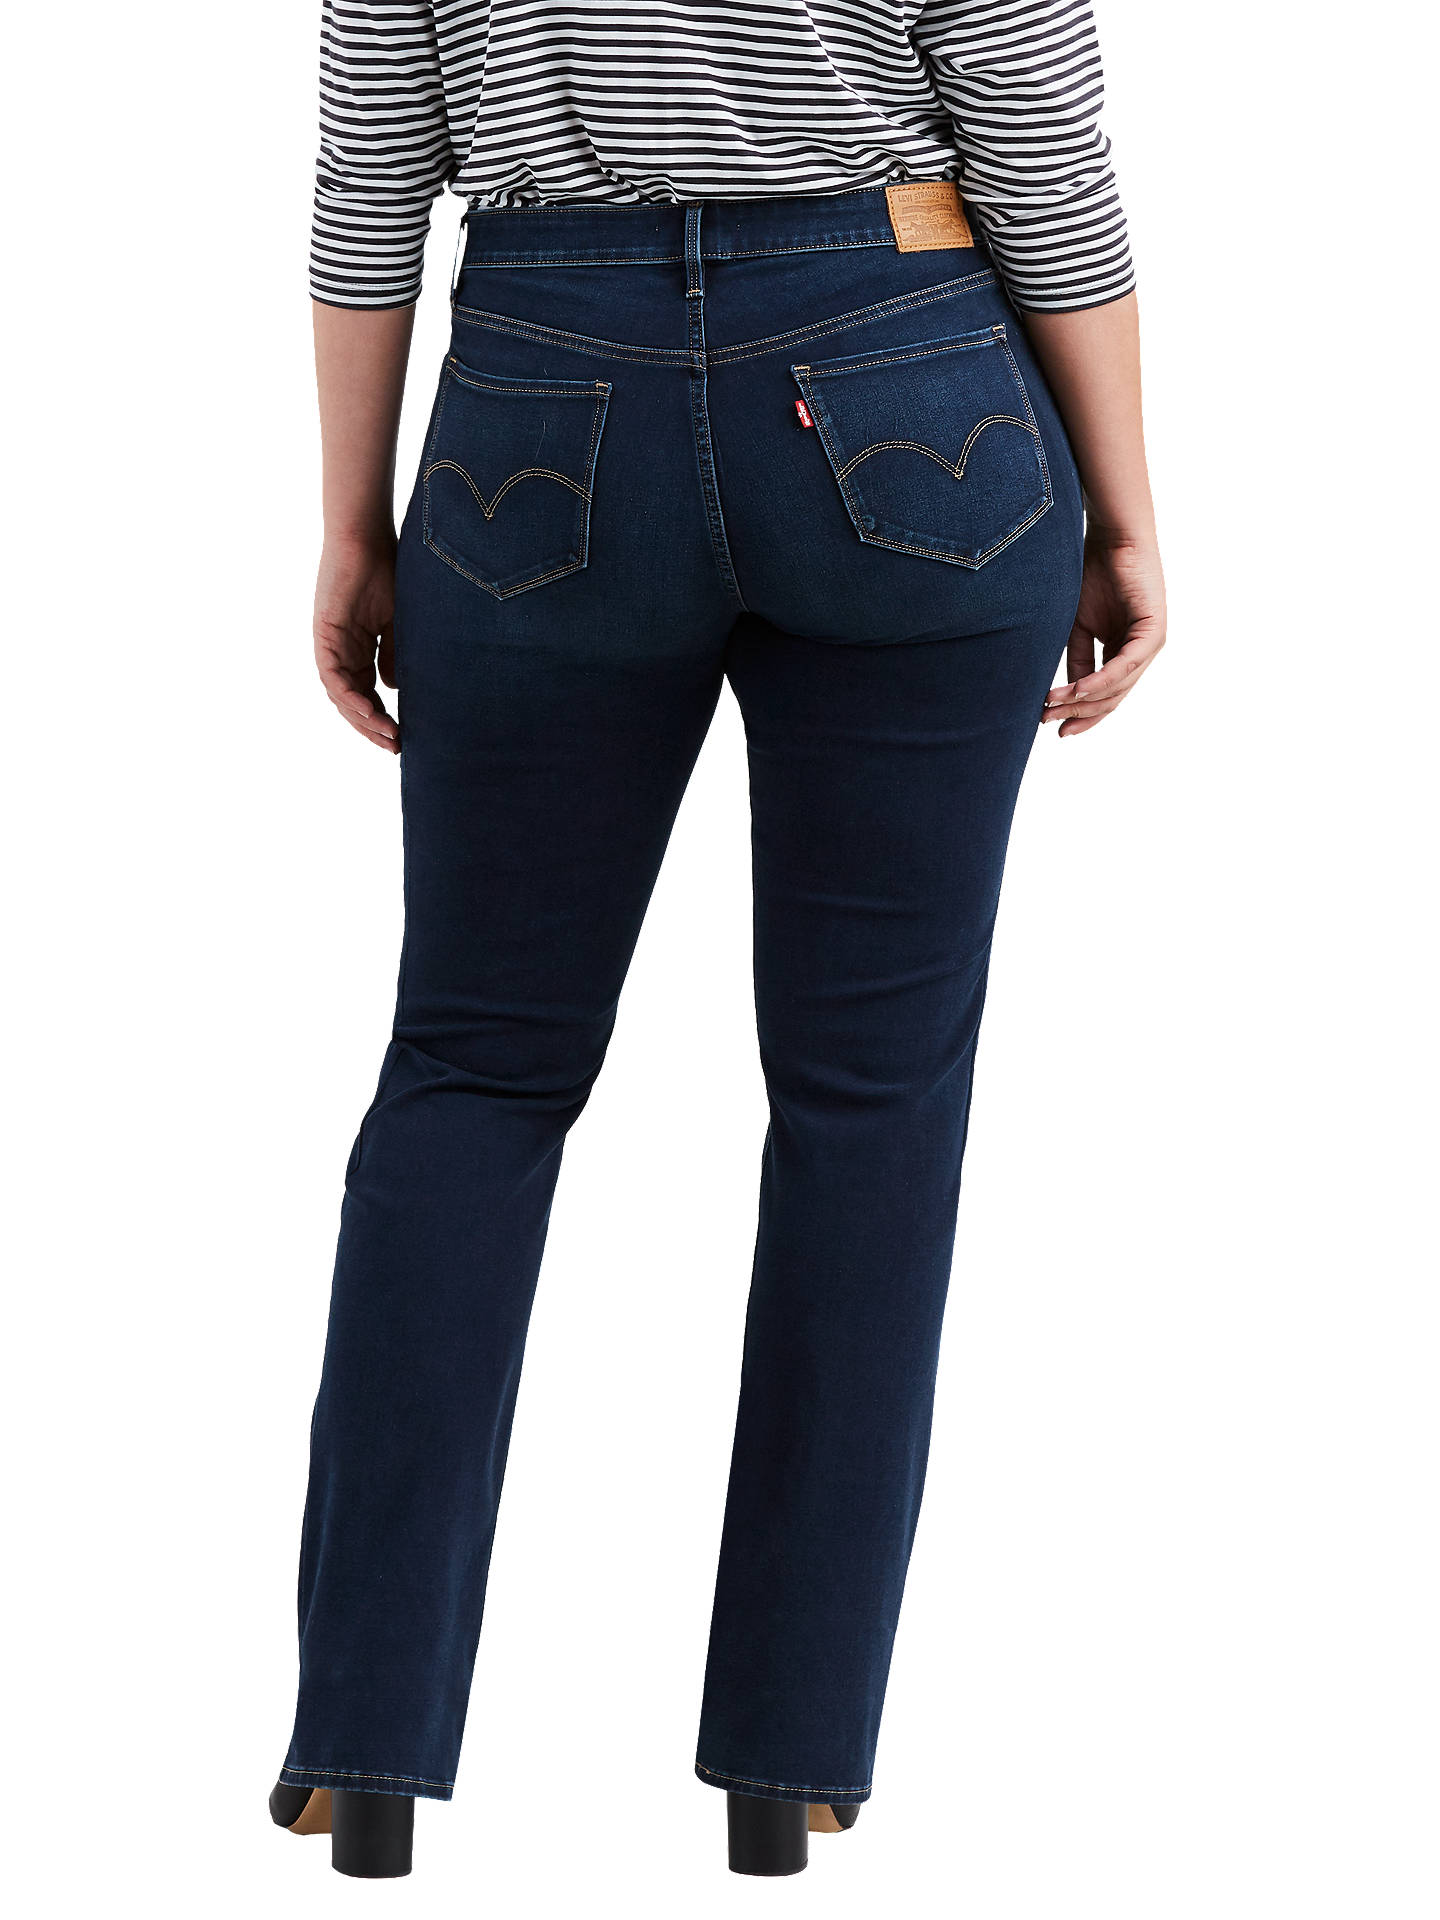 a46da9cdaac ... Buy Levi's Plus 314 Shaping Straight Jeans, Stand By Me, 16 Online at  johnlewis